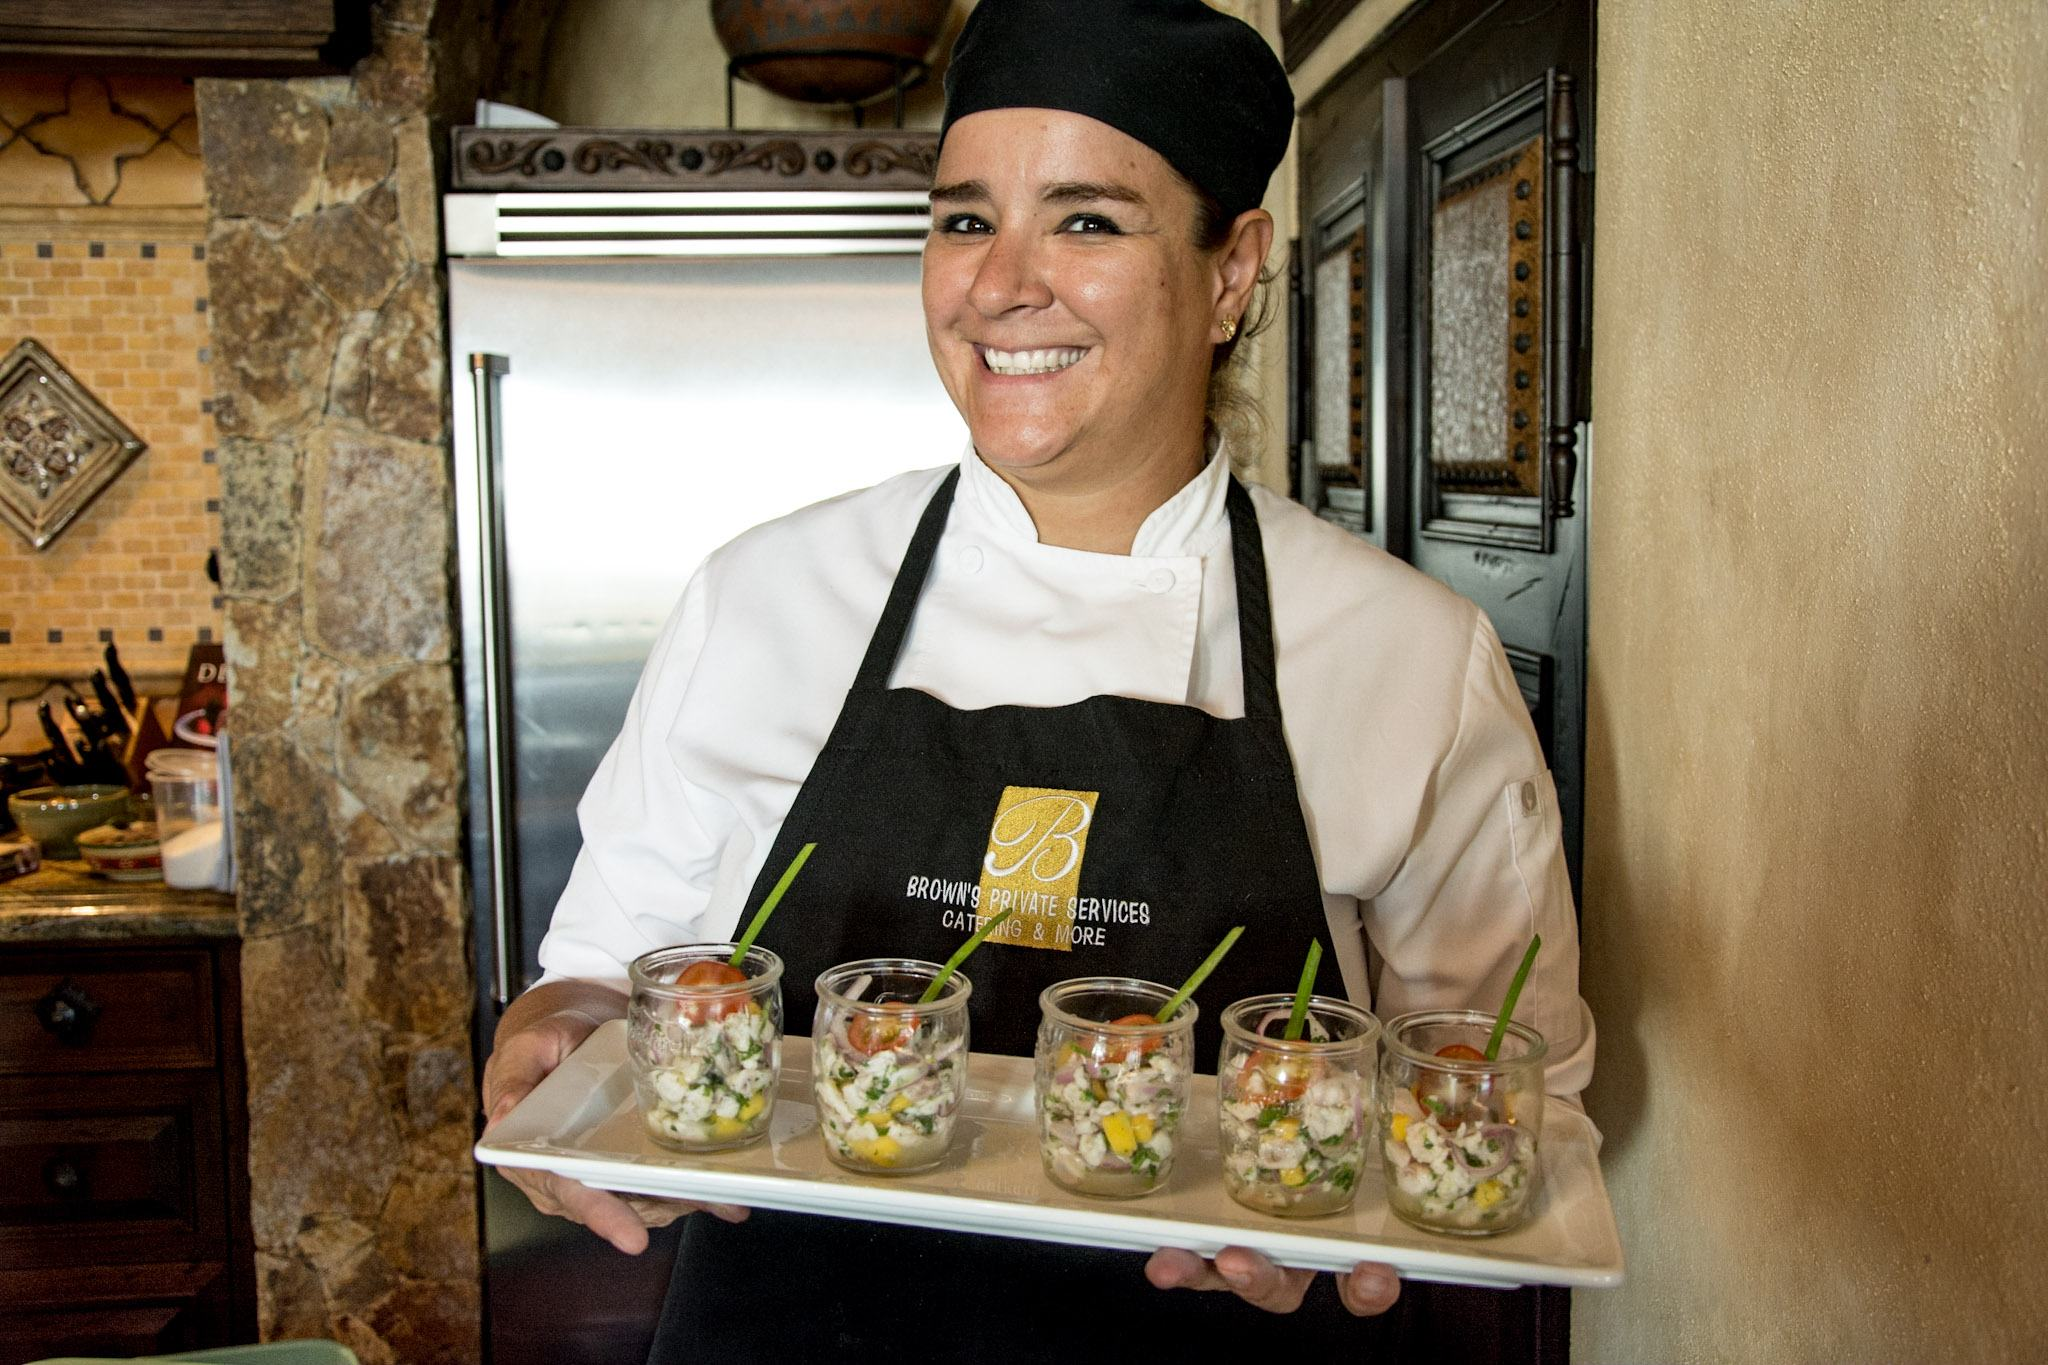 Browns Catering Chef